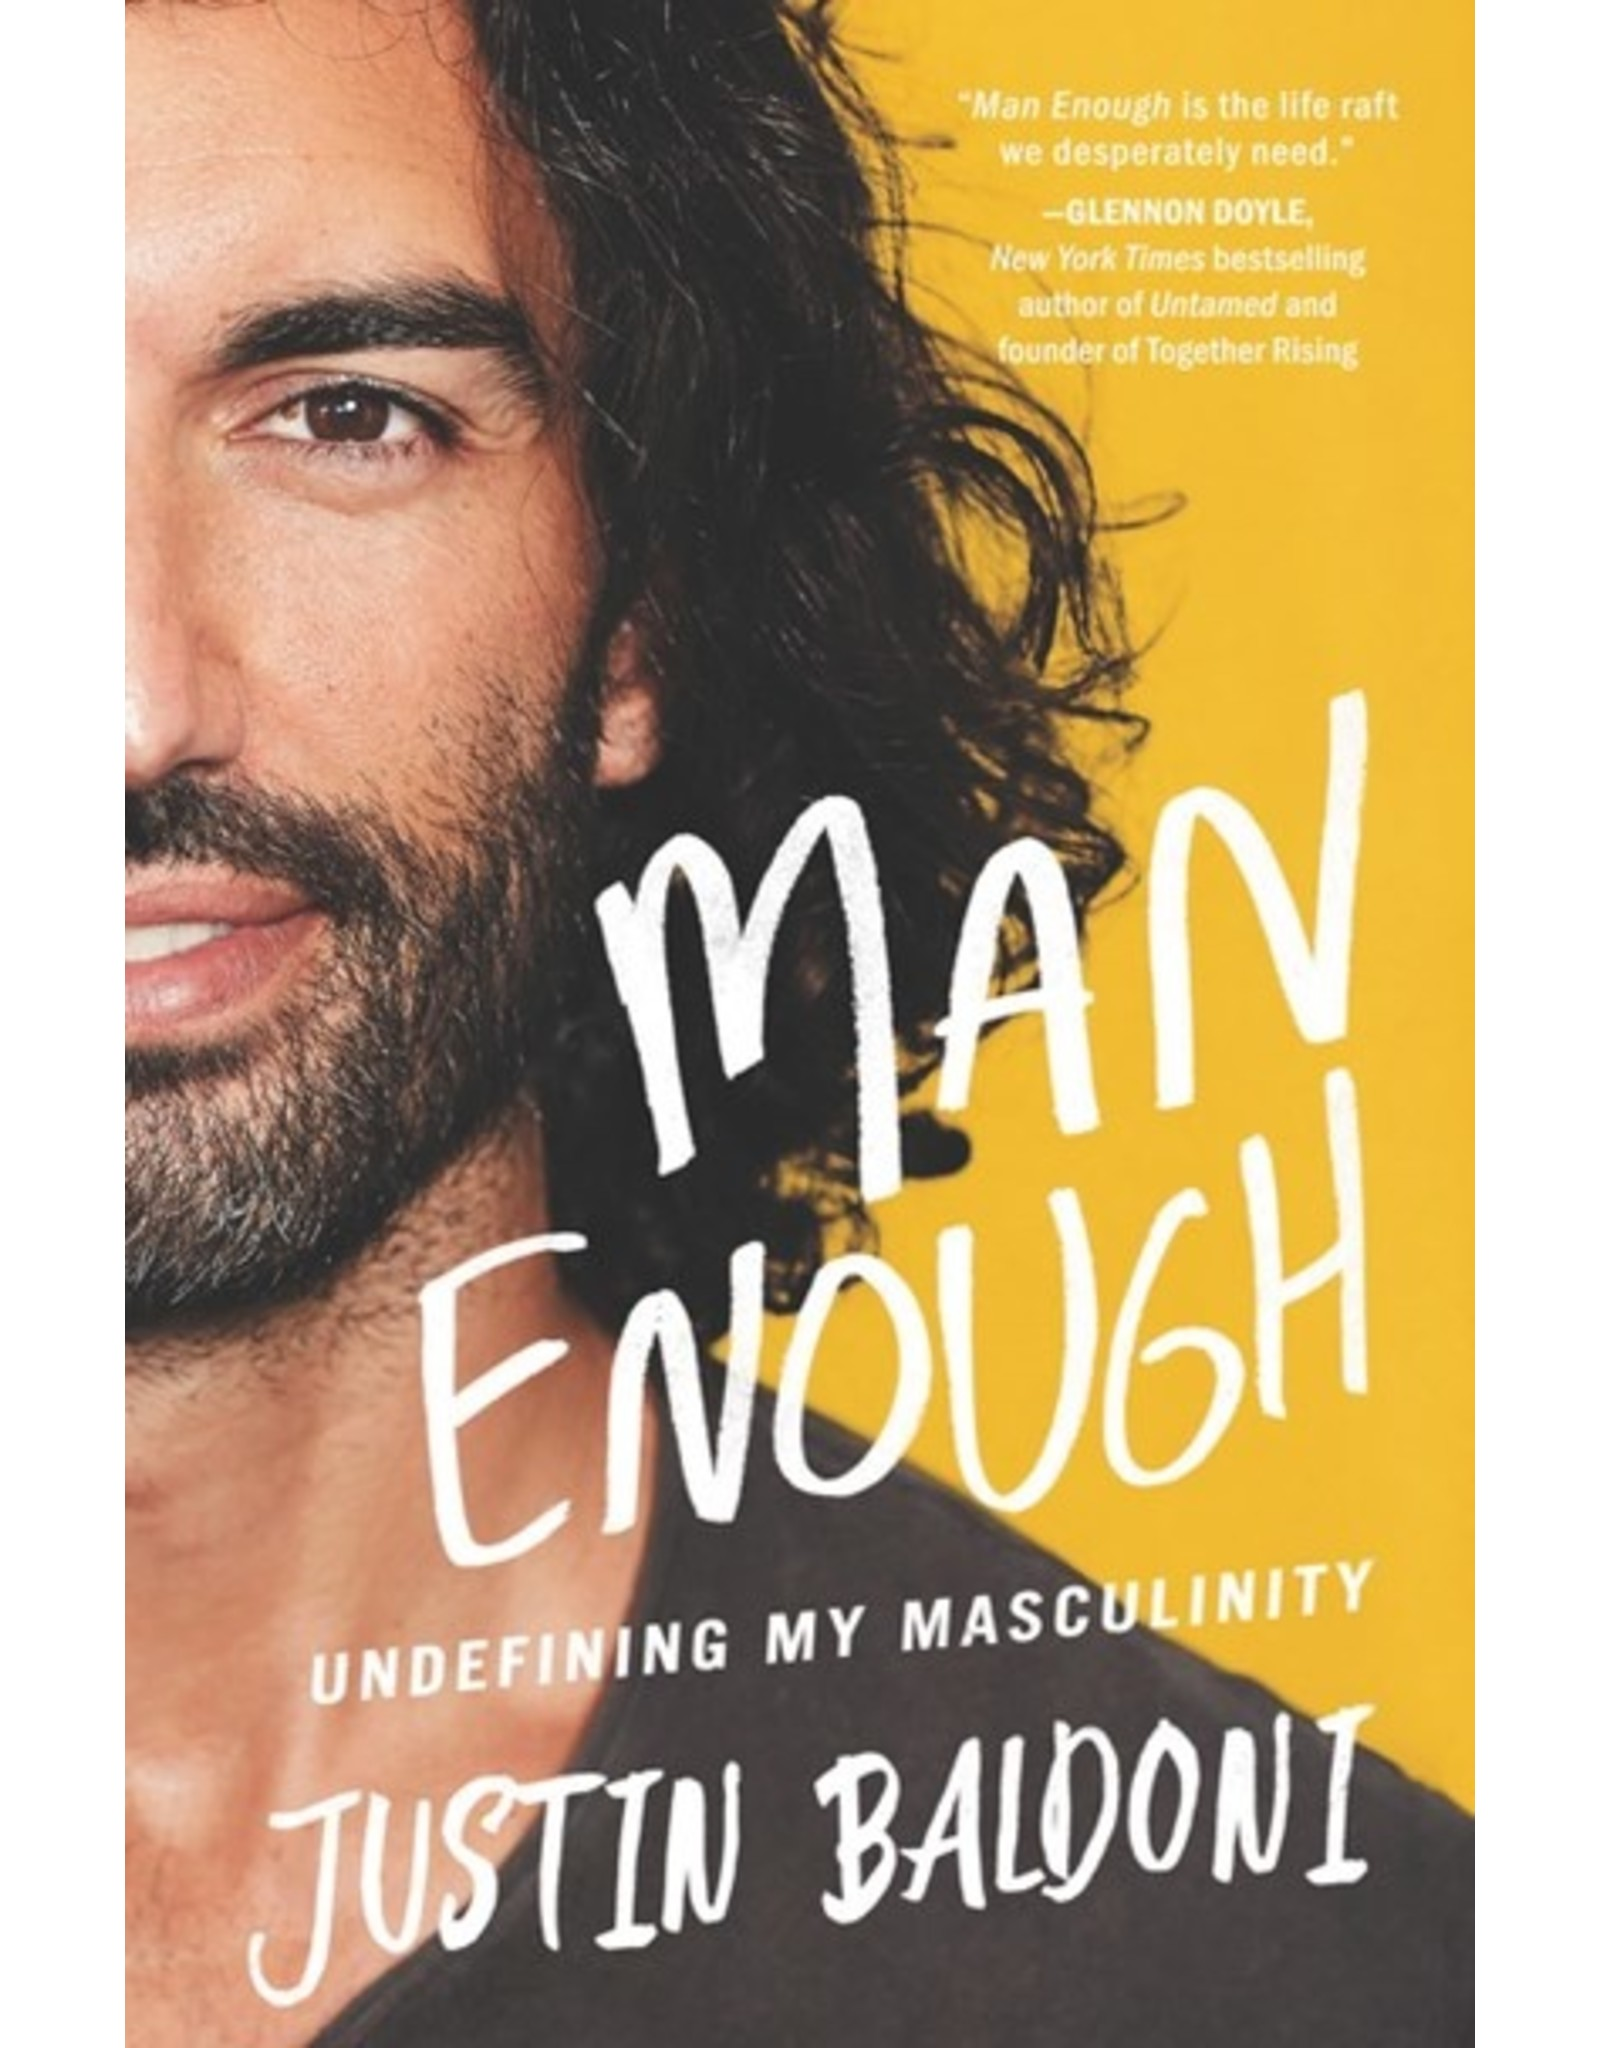 Books Man Enough : Undefining My Masculinity  by Justin Baldoni  {Signed }(Pre-Order)